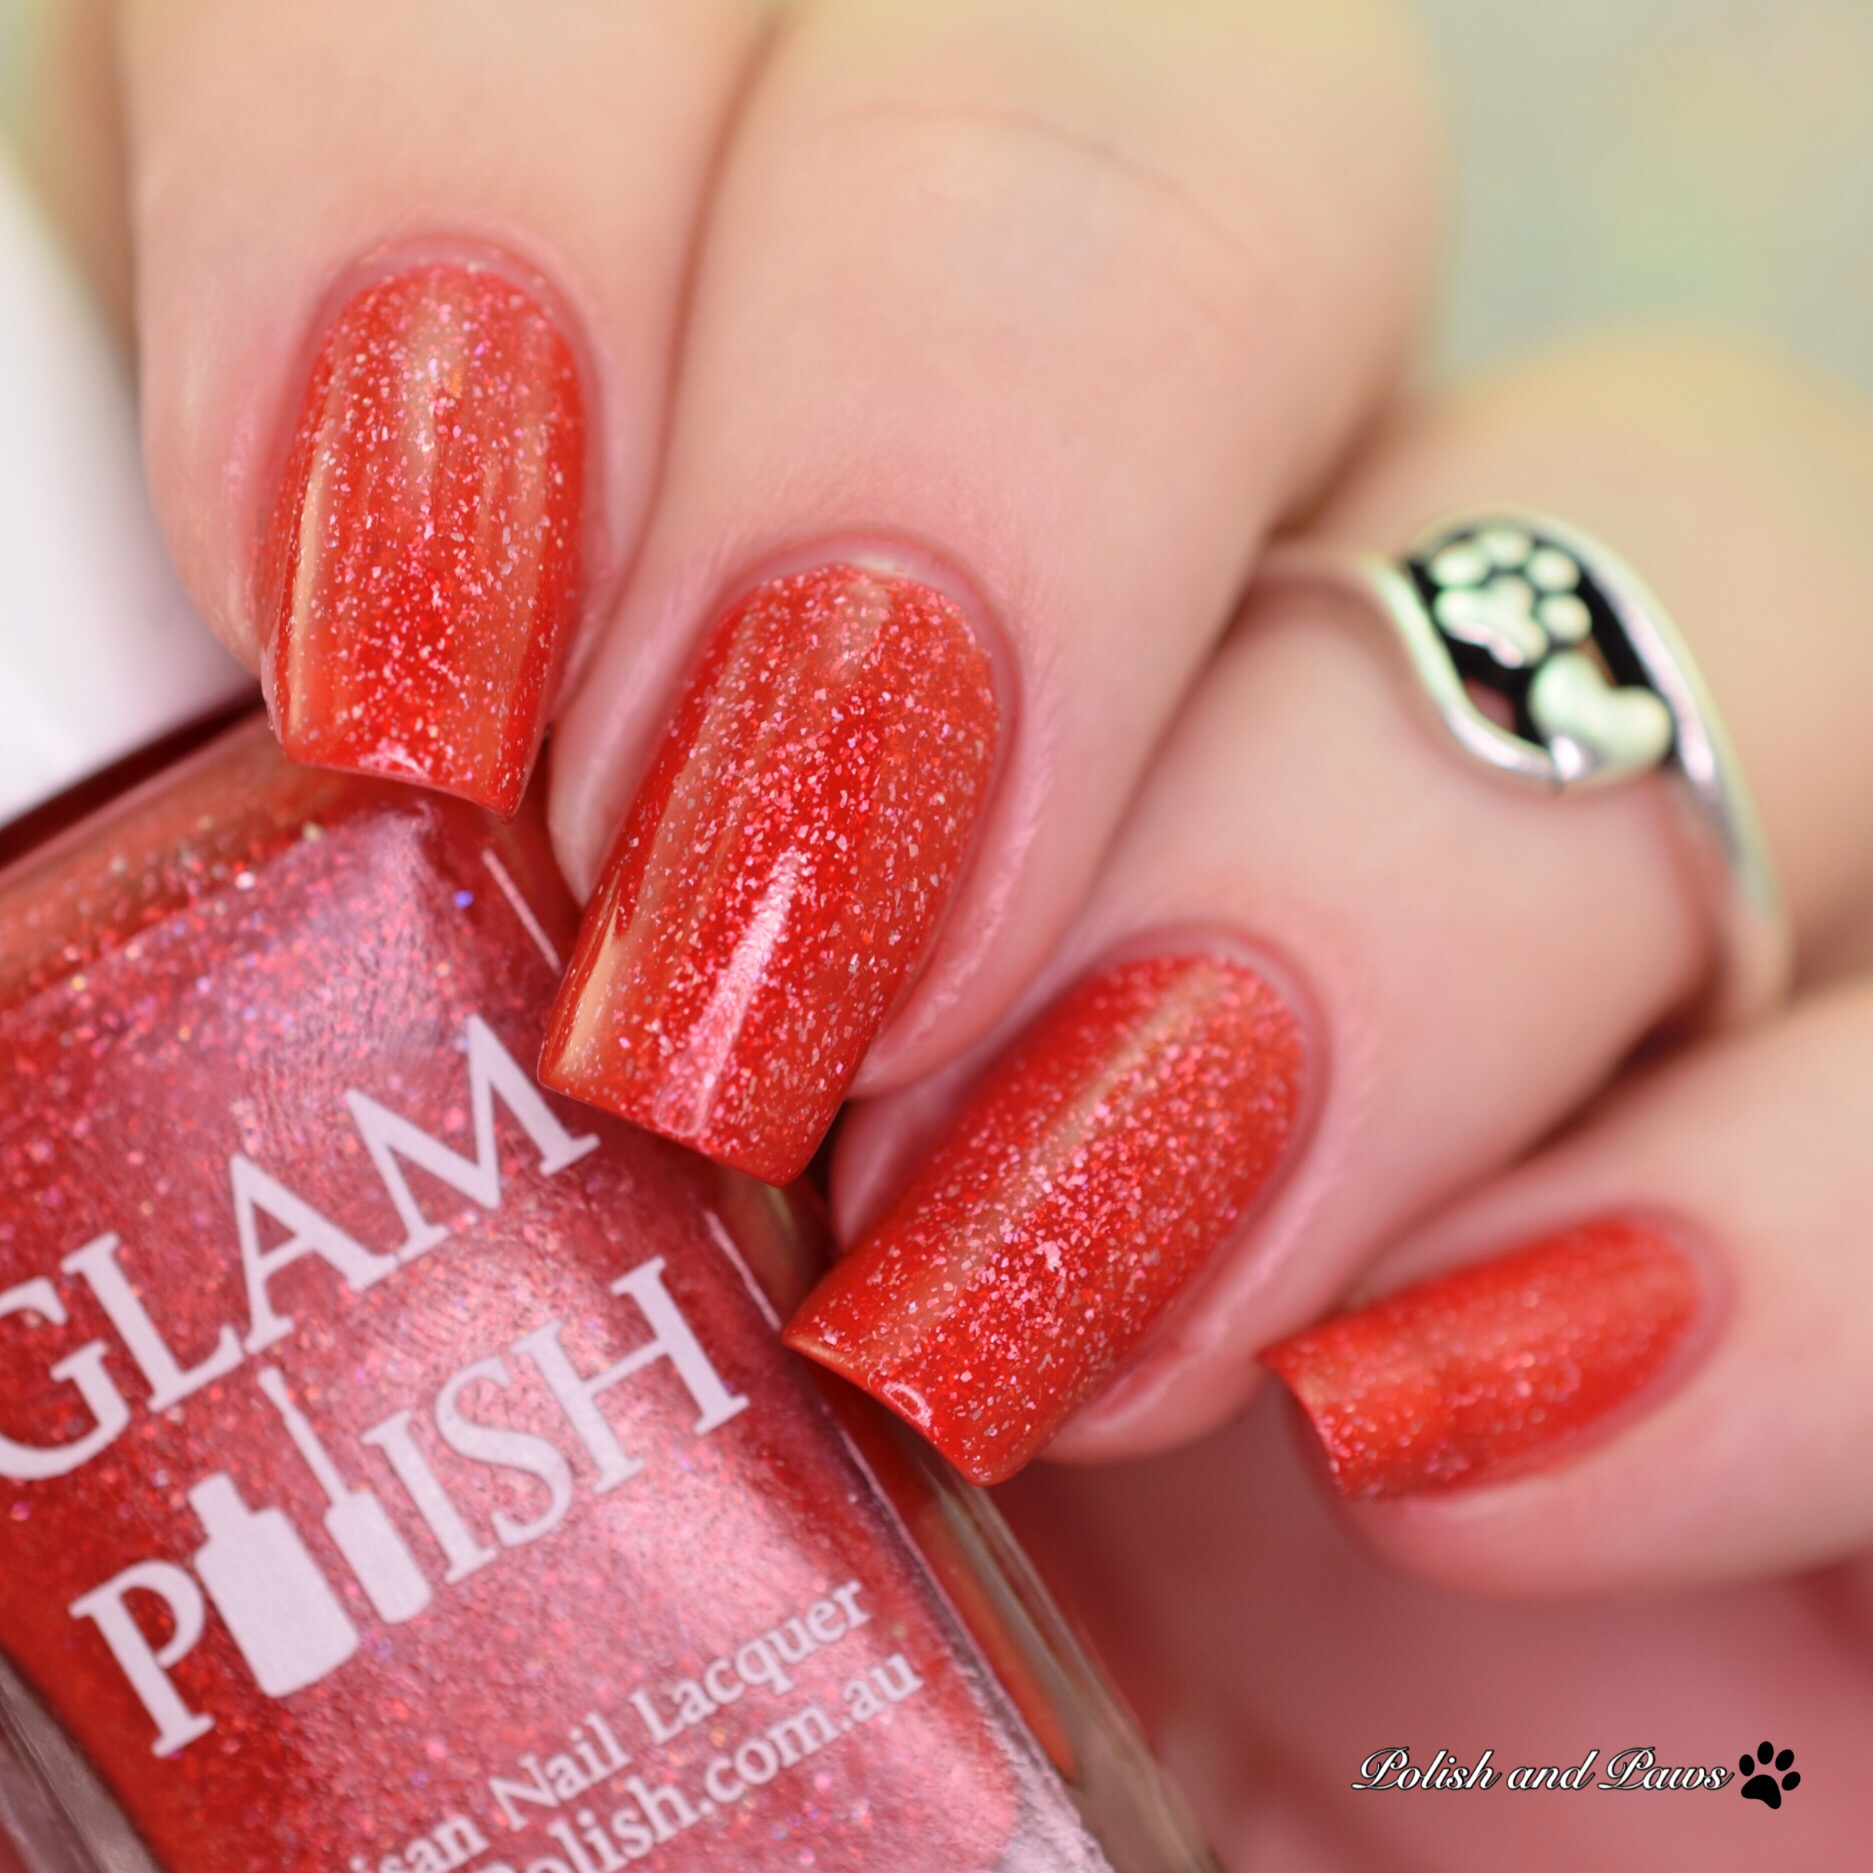 Glam Polish Devil in Disguise